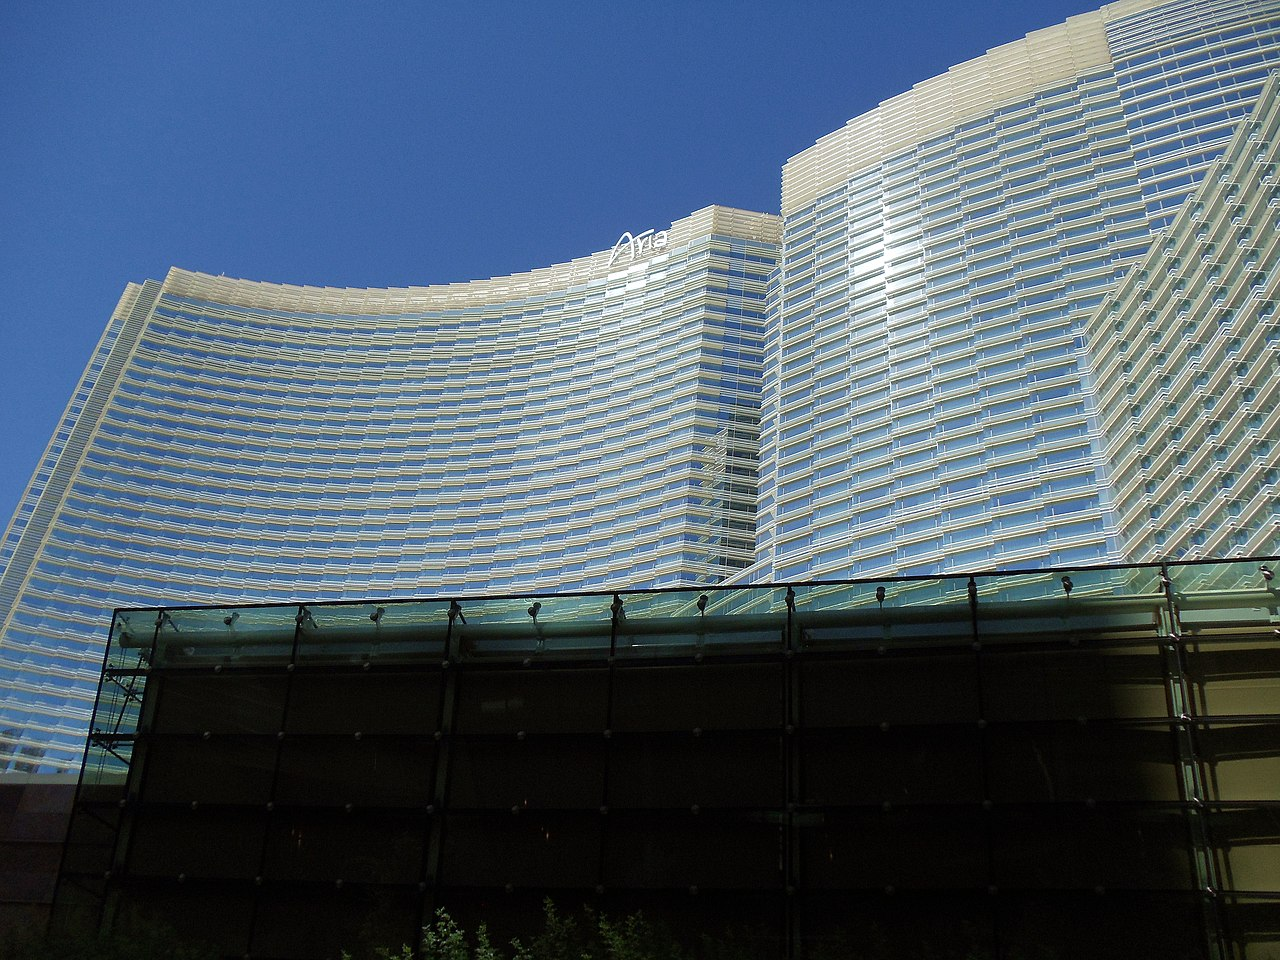 aria resort & casino wiki